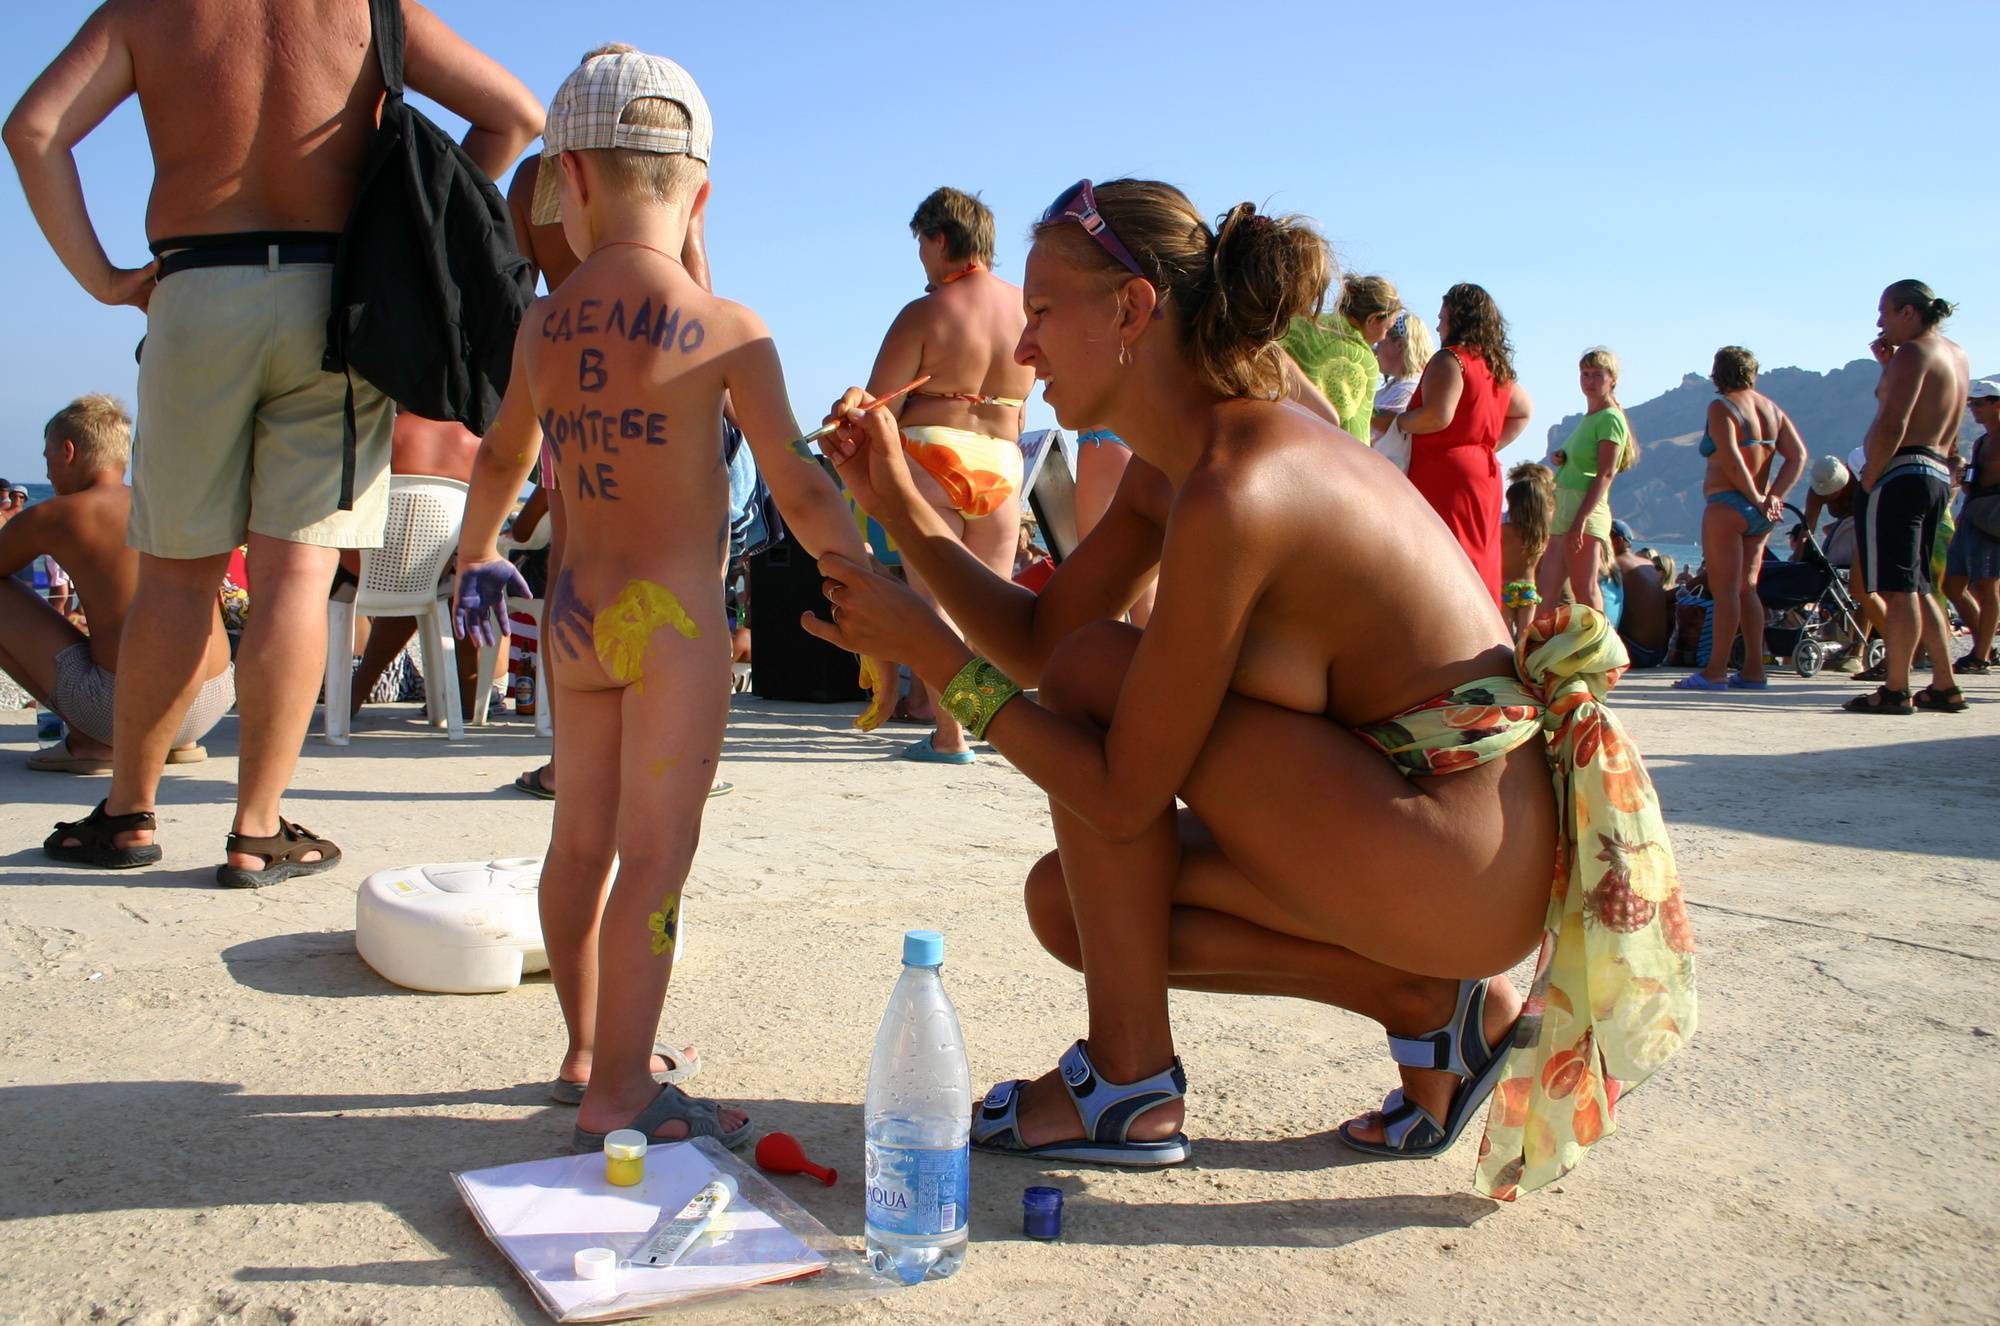 Purenudism Pics-Young Child Gets Painted - 1